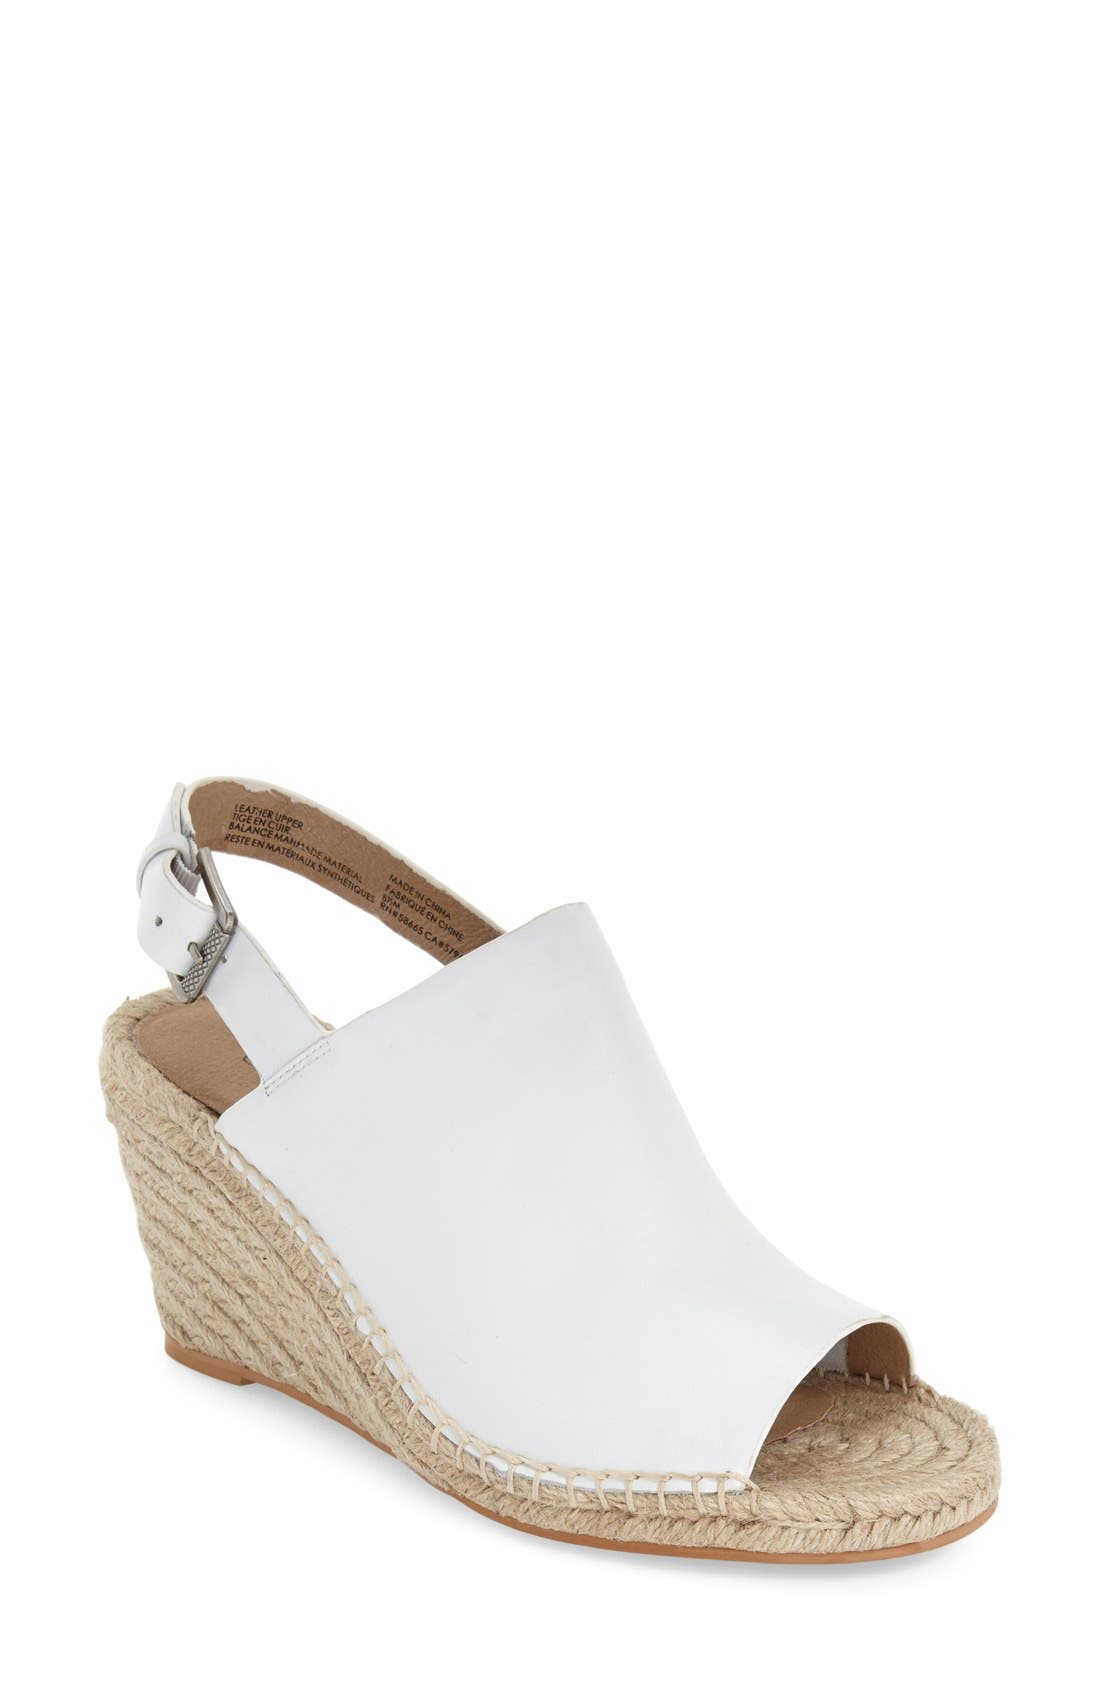 Sutton Slingback Sandal,                             Main thumbnail 1, color,                             WHITE LEATHER